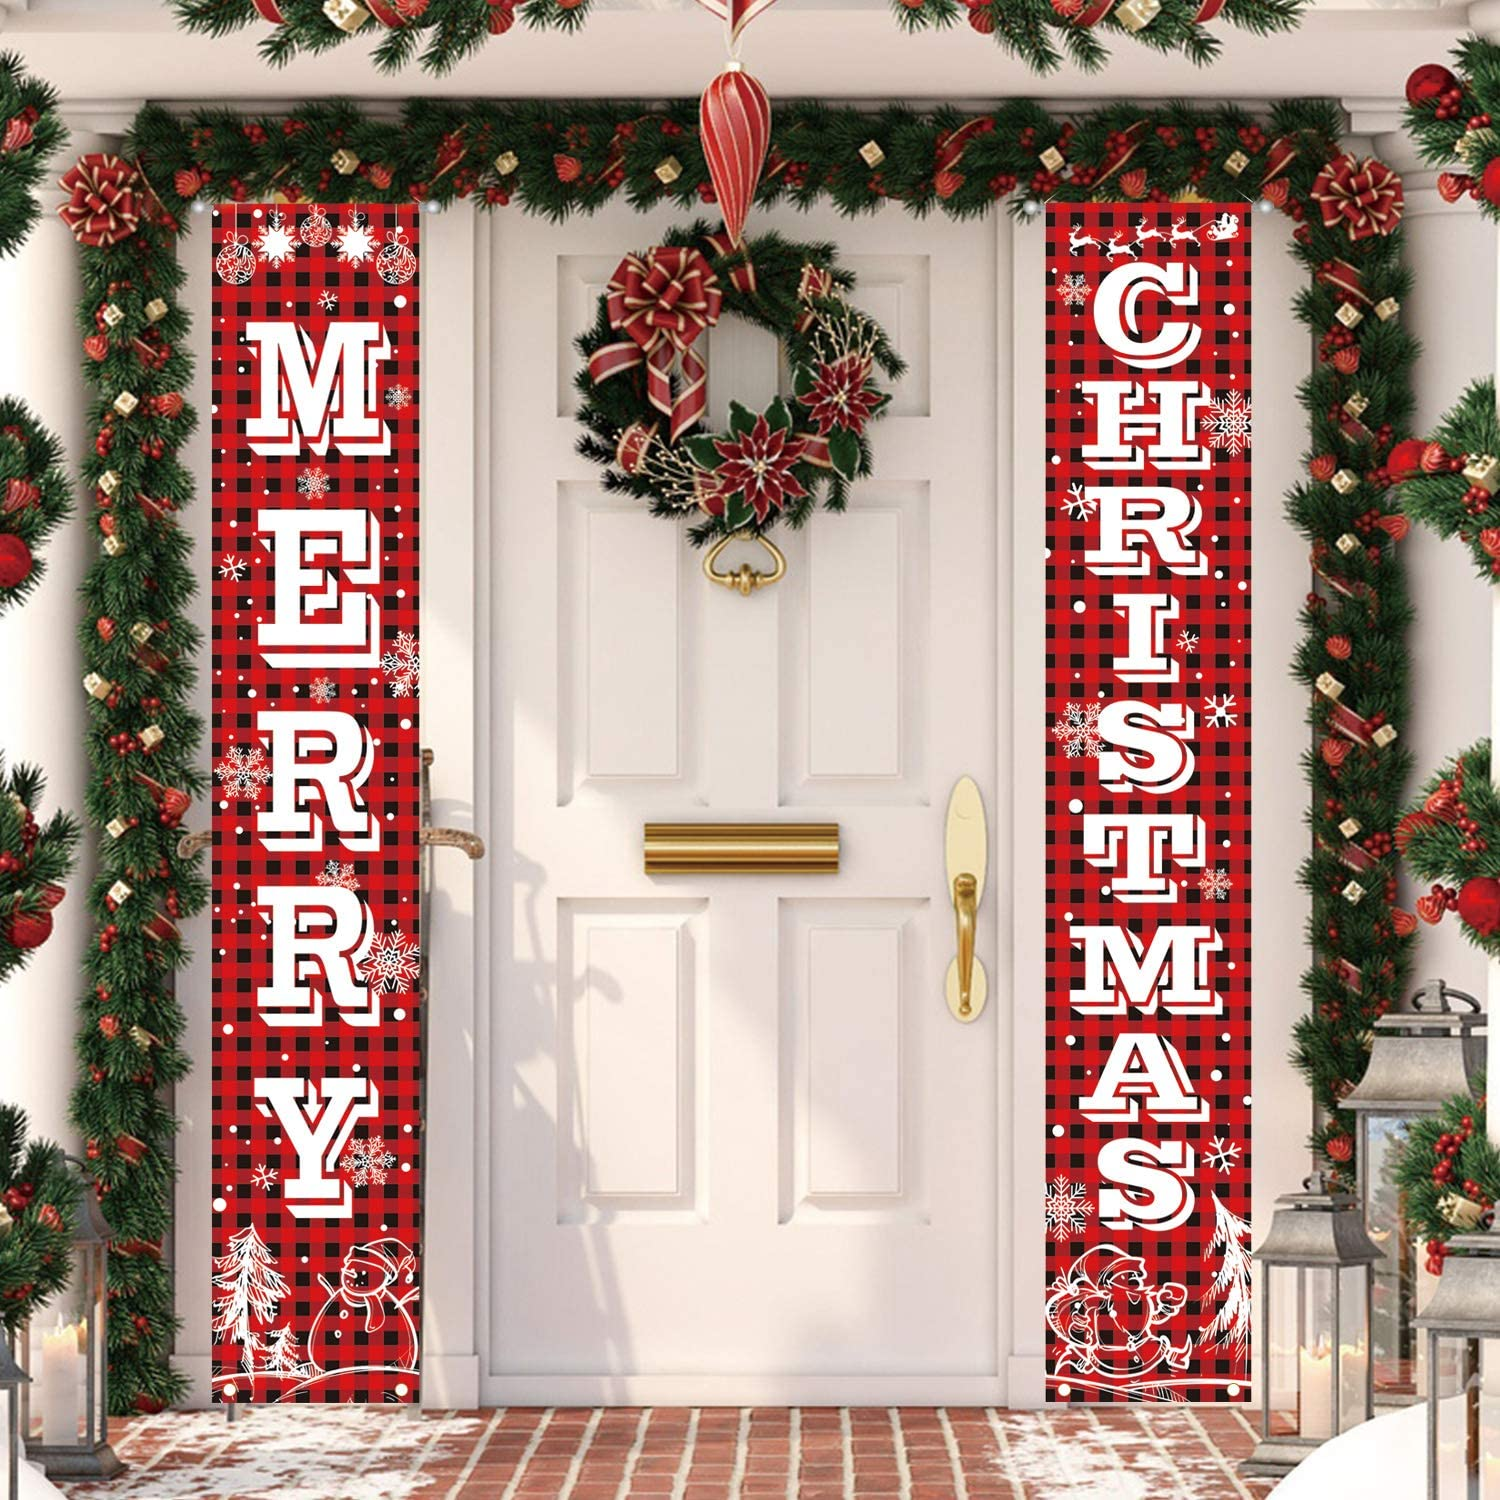 MAIAGO Christmas Decorations - Merry Christmas Hanging Banners - Red Buffalo Check Plaid Christmas Porch Signs - Xmas Decor Banners for Indoor & Outdoor, Home, Wall, Front, Door, Apartment Party